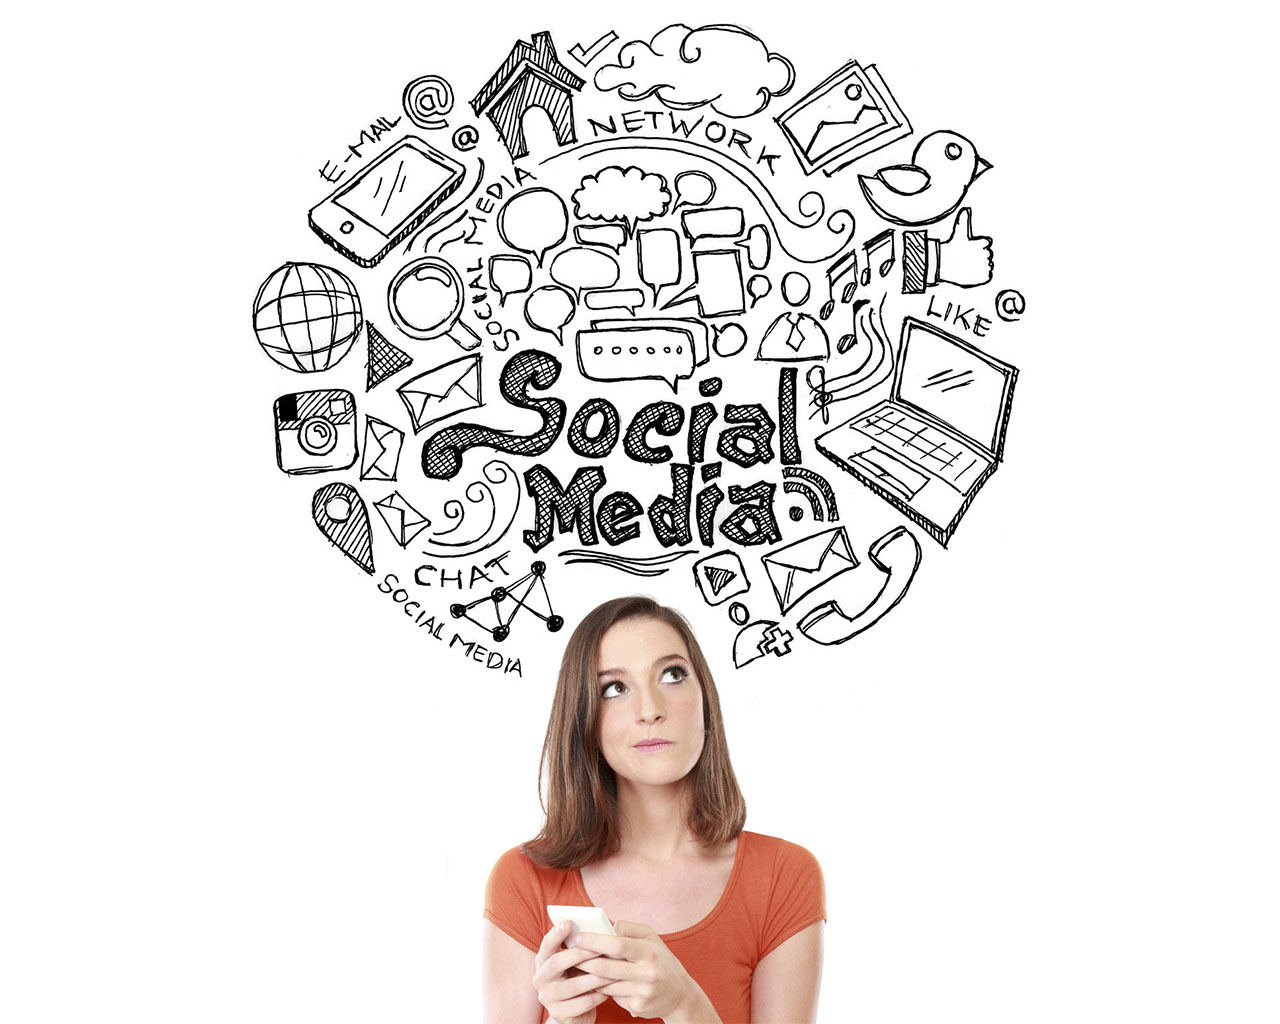 ¿Cómo desarrollar un plan de Social Media Marketing?